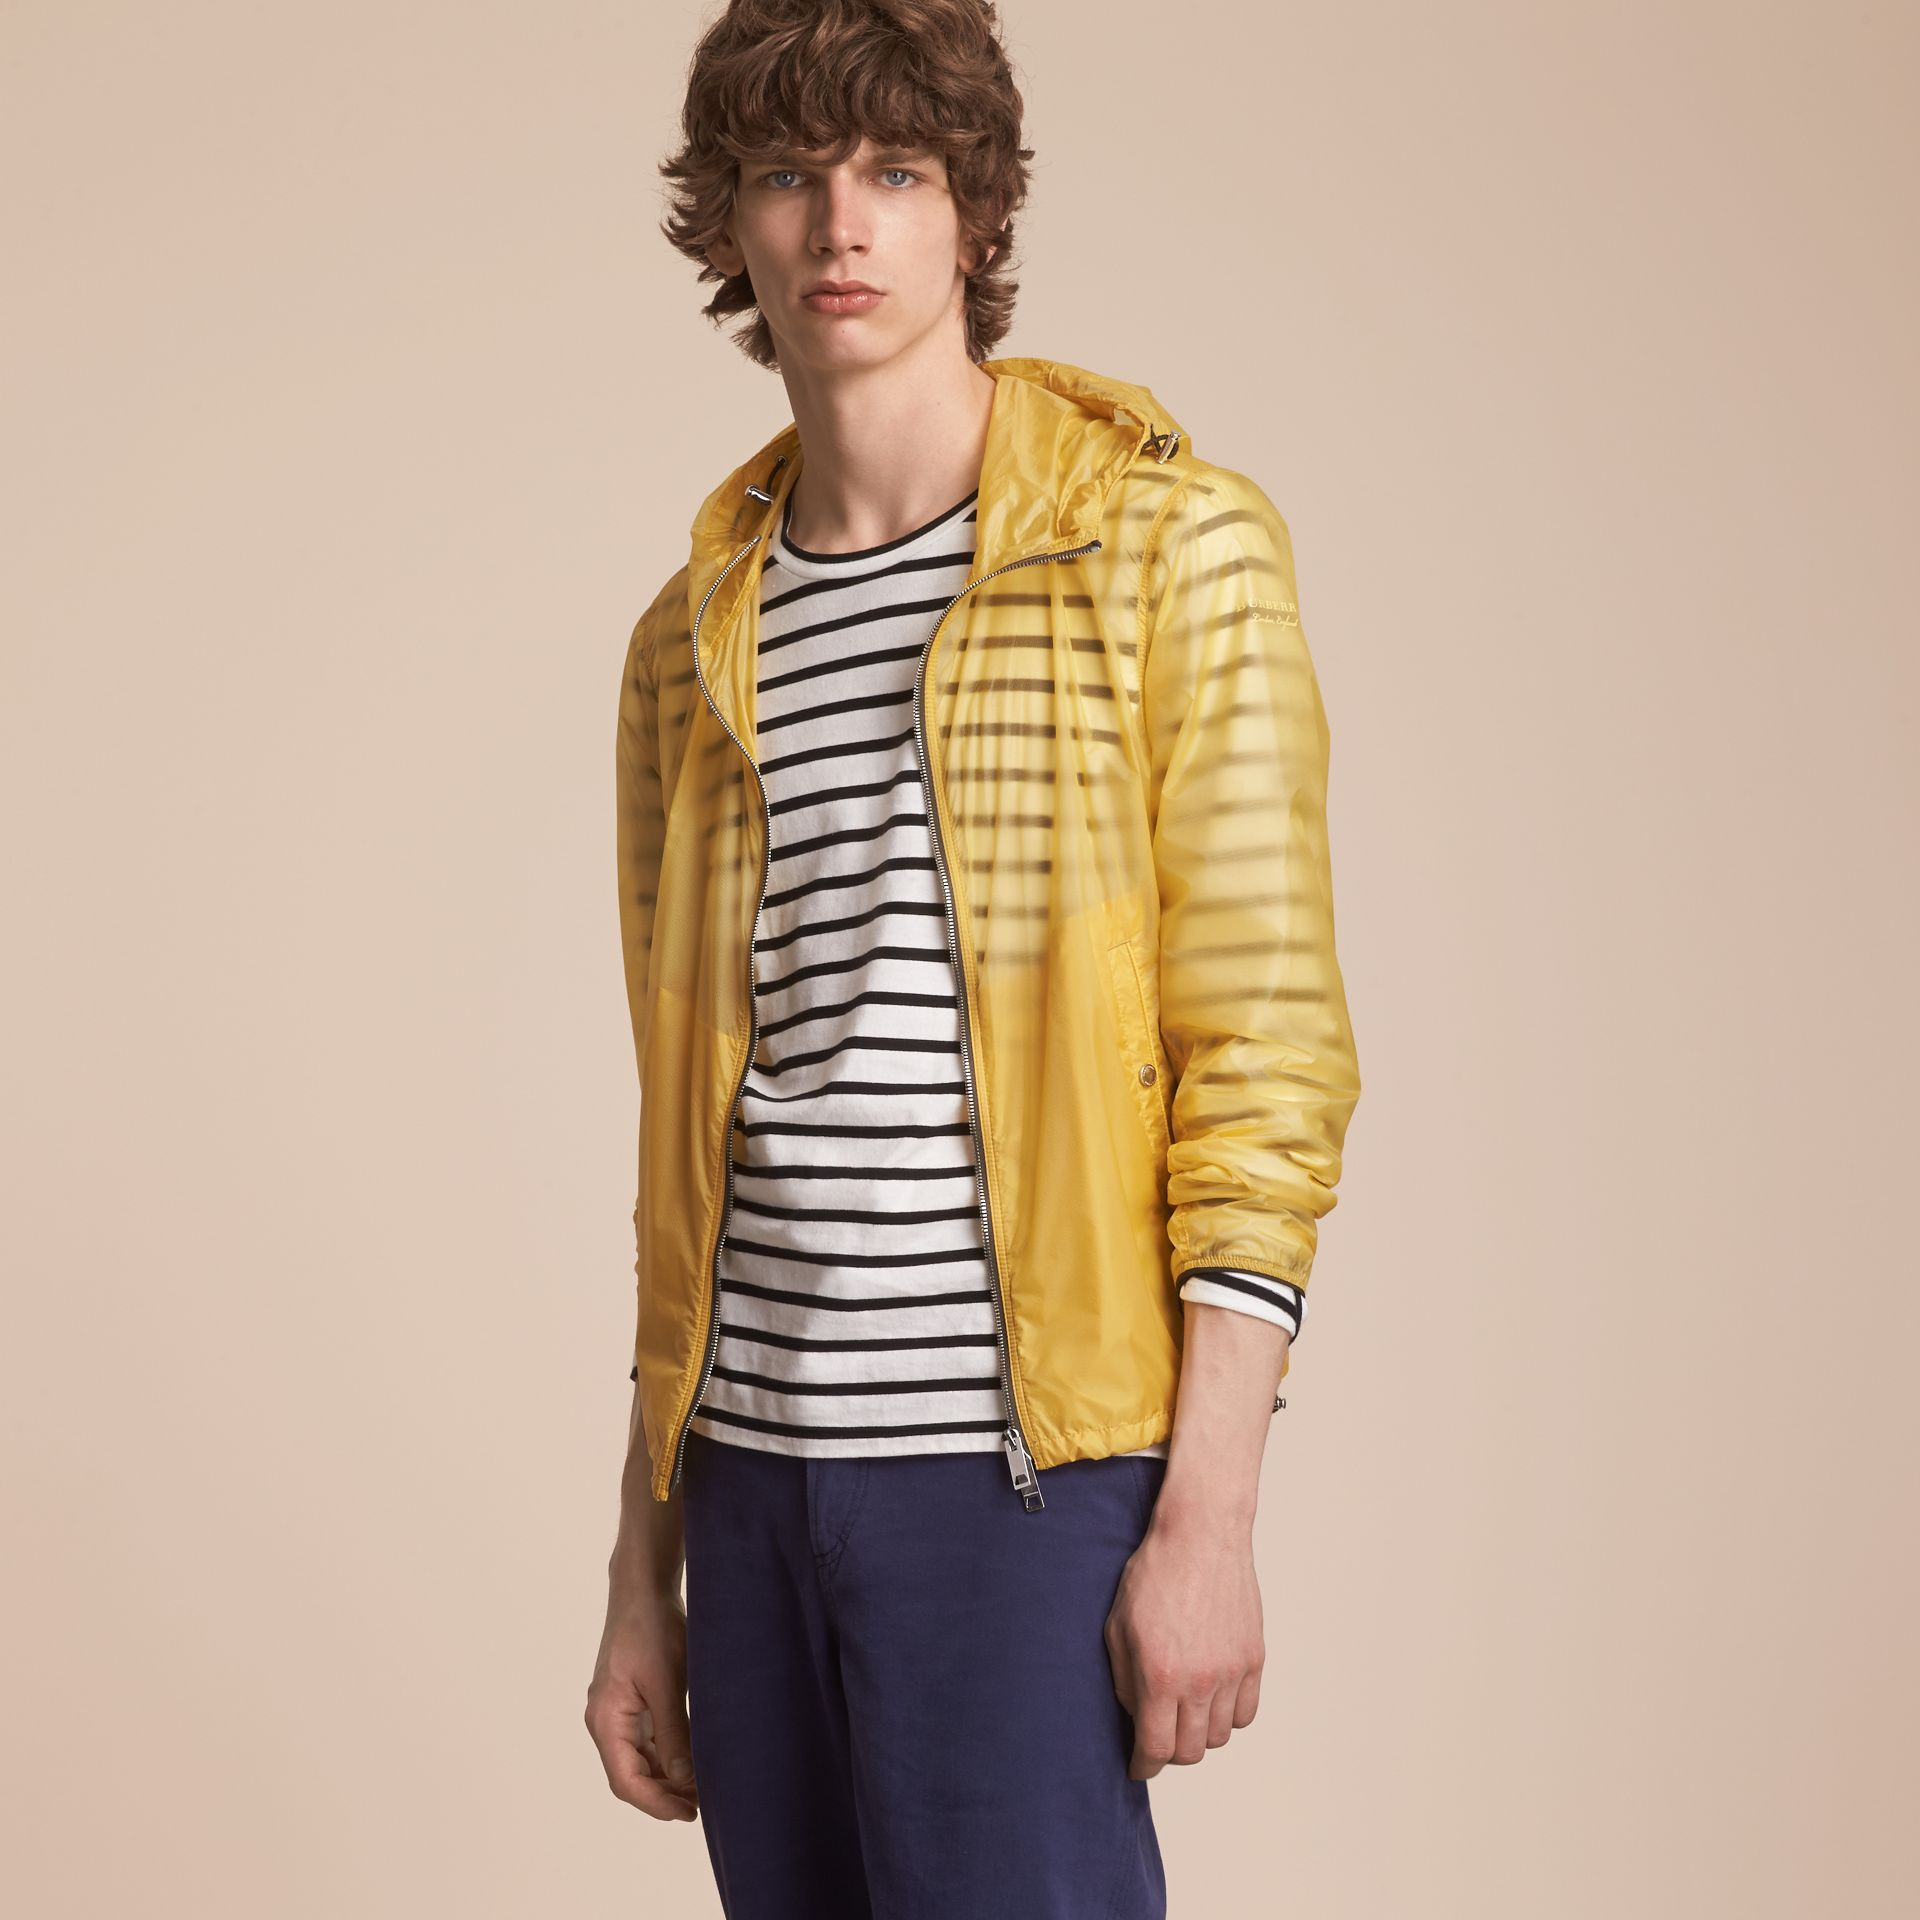 Hooded Super-lightweight Jacket in Pale Yellow - Men | Burberry Australia - gallery image 6